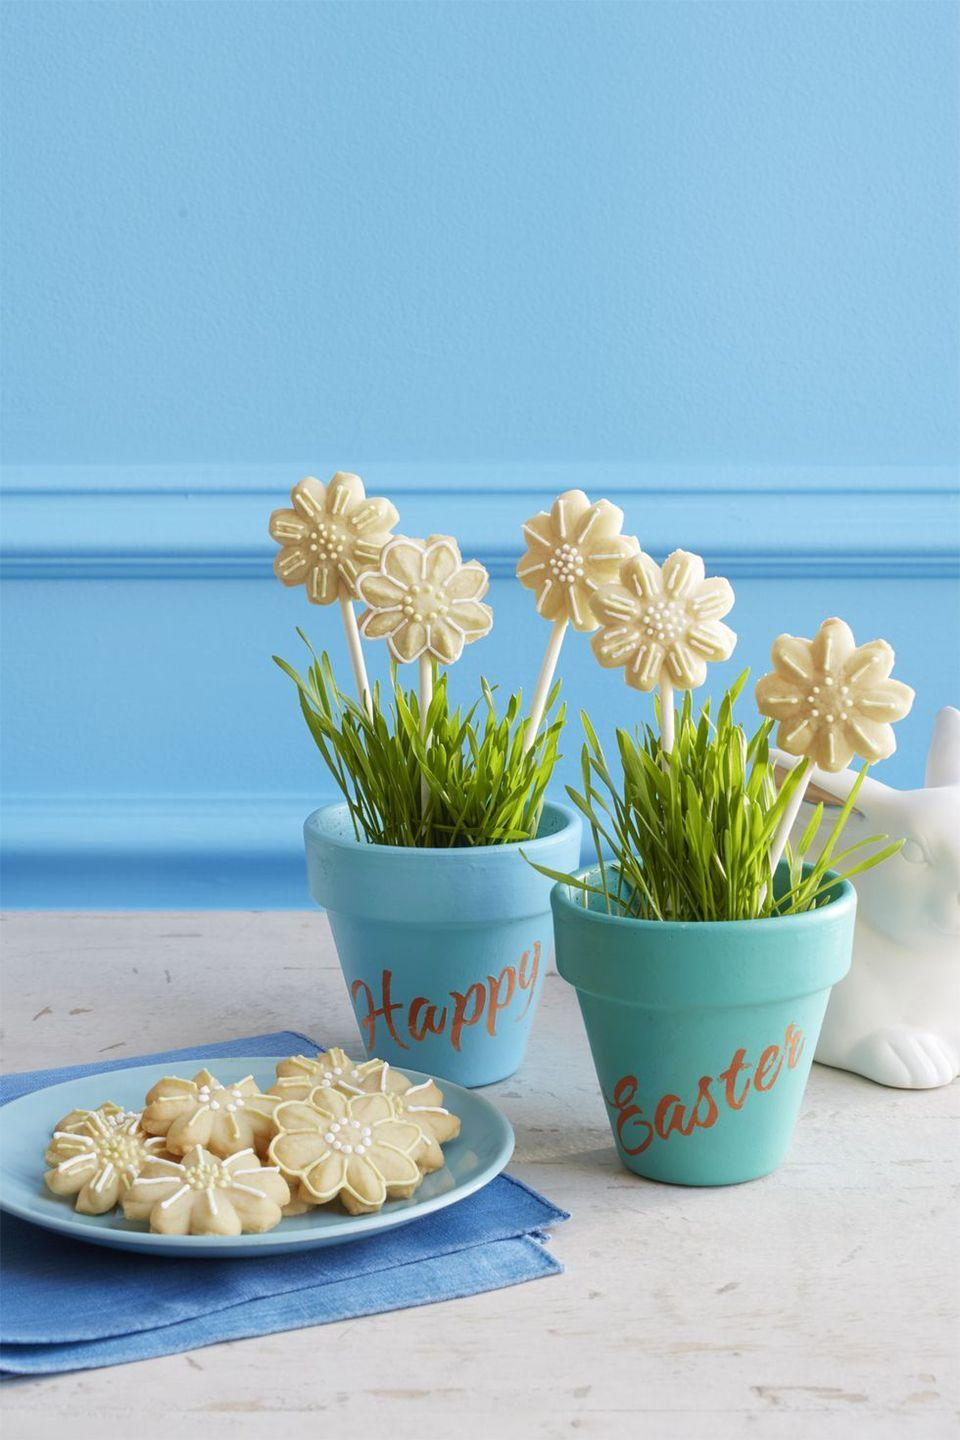 "<p>Speaking of flowers, use a cookie press to give sugar cookies a spring-appropriate look.</p><p><em><a href=""https://www.womansday.com/food-recipes/food-drinks/recipes/a58136/spritz-daisy-cookies-recipe/"" rel=""nofollow noopener"" target=""_blank"" data-ylk=""slk:Get the recipe from Woman's Day »"" class=""link rapid-noclick-resp"">Get the recipe from Woman's Day »</a></em><br></p>"